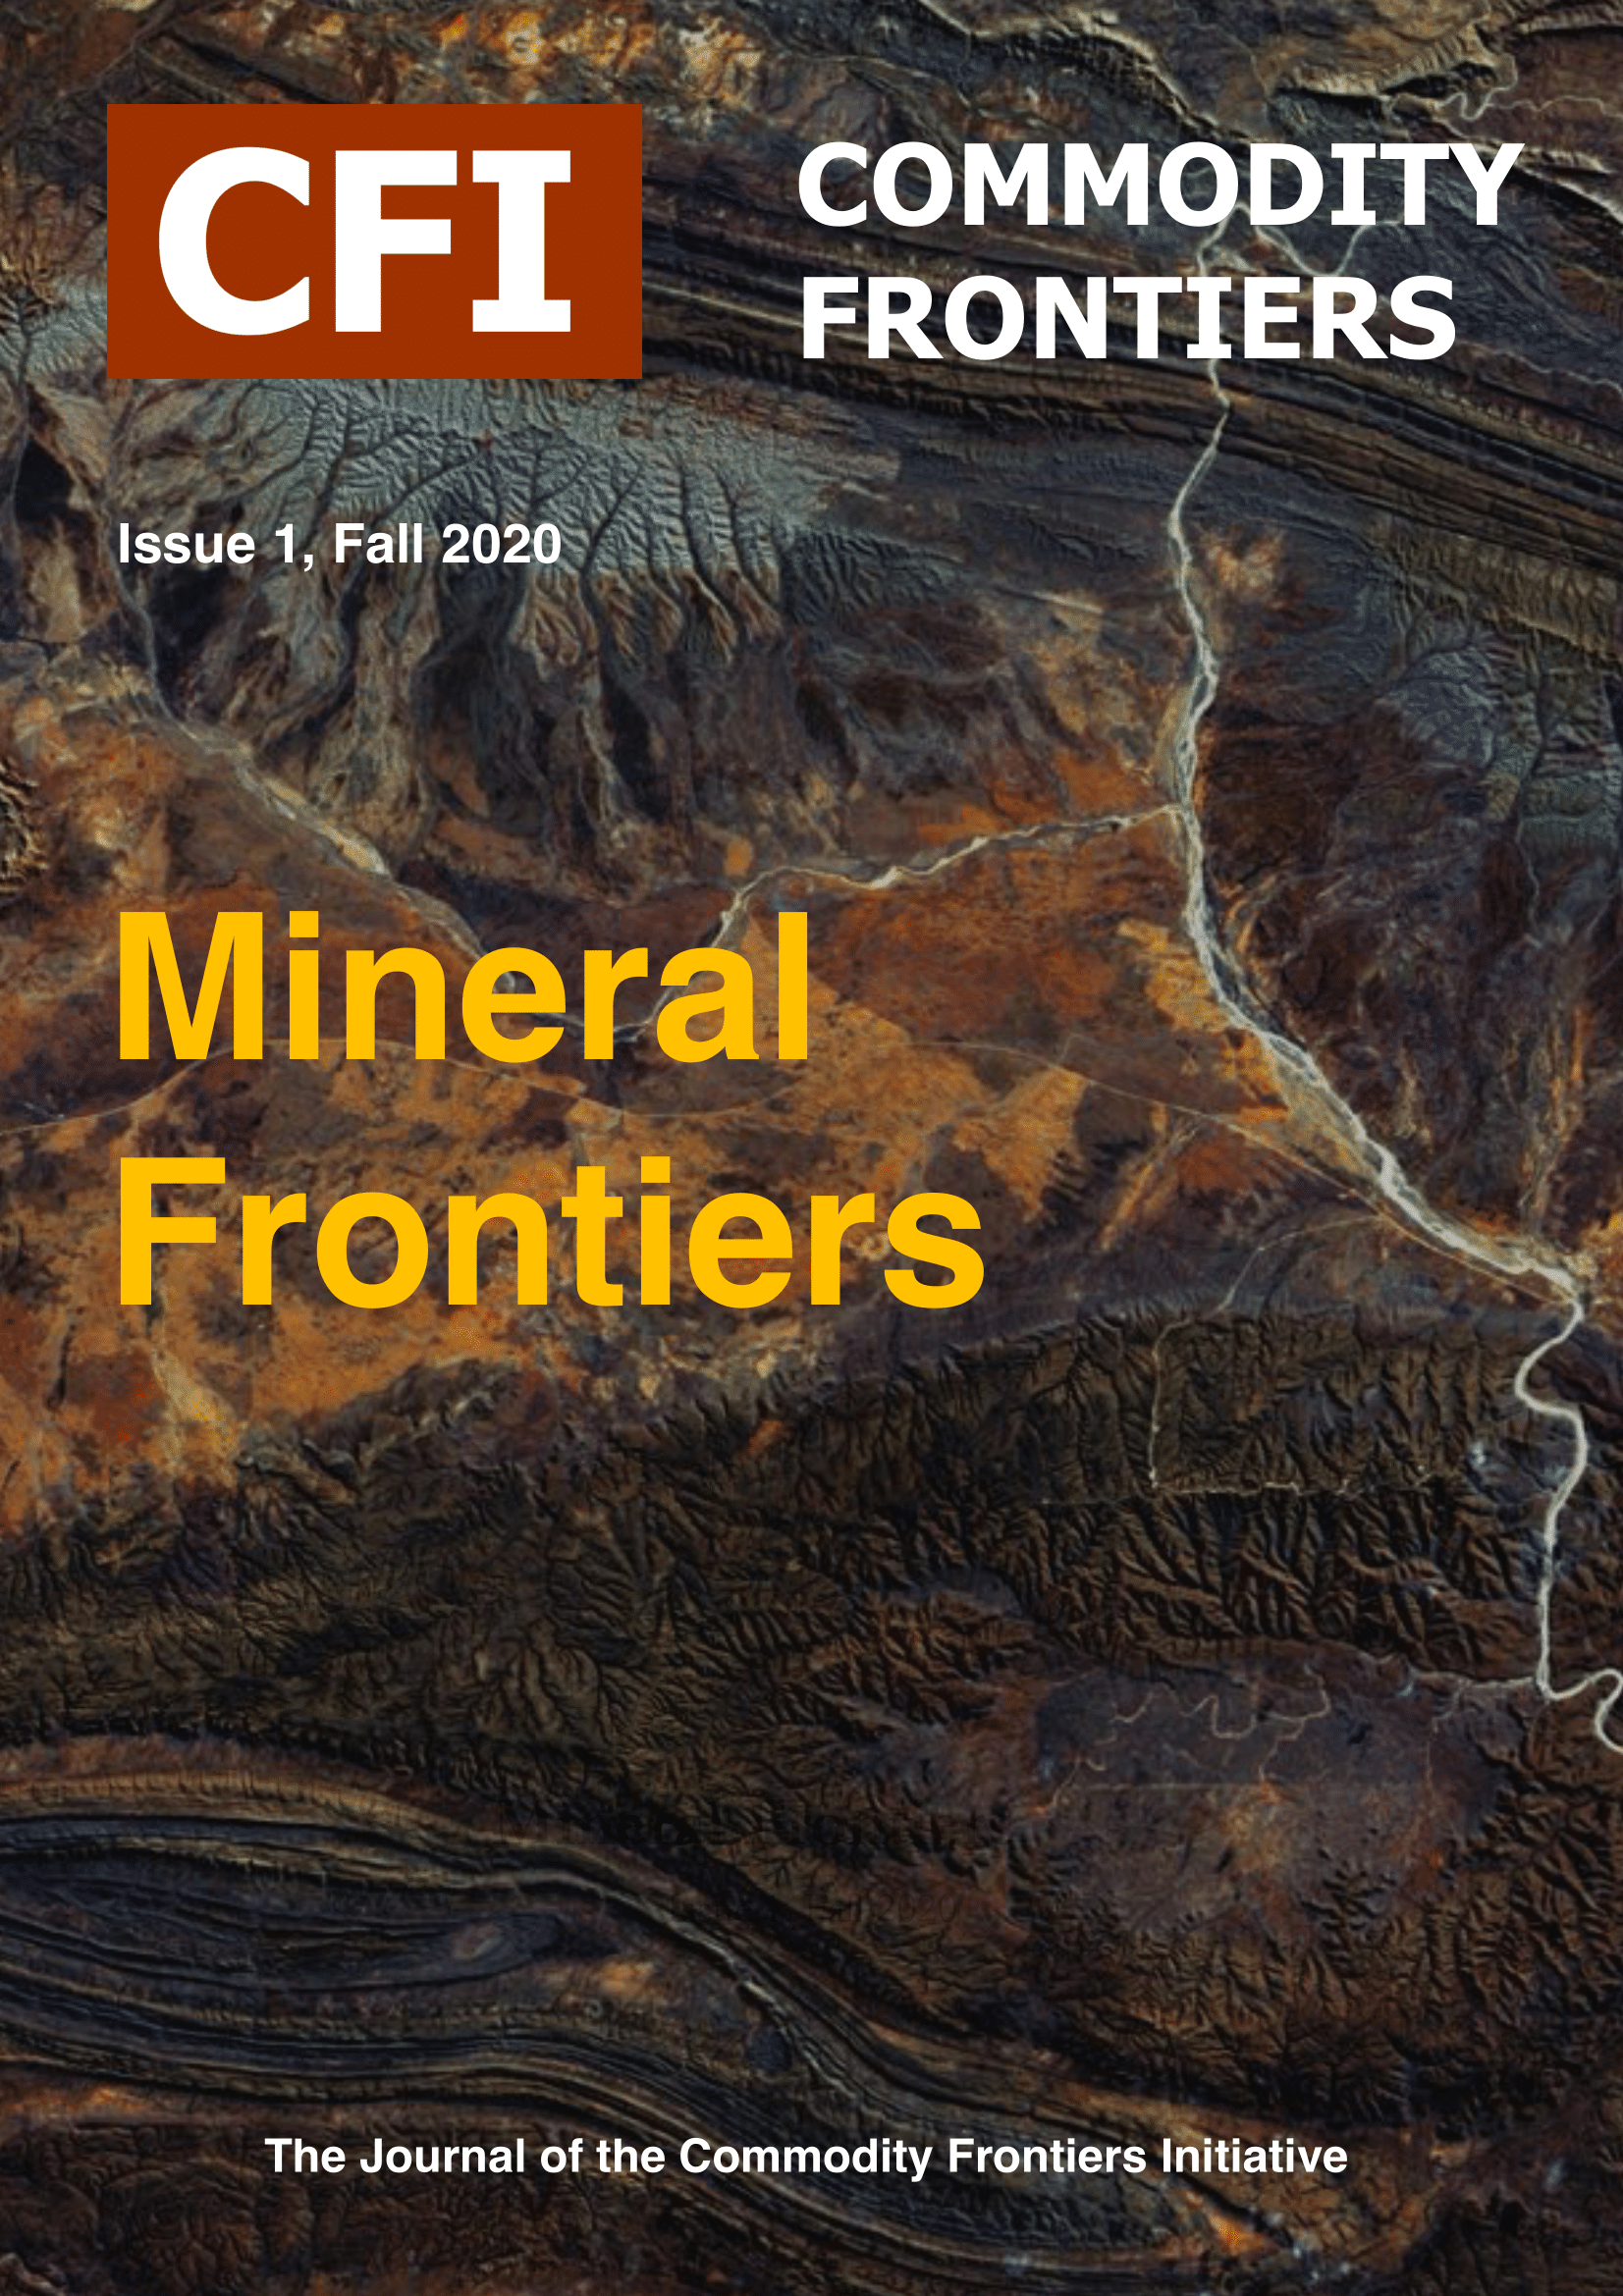 Cover Image by United States Geological Survey (USGS) on Unsplash